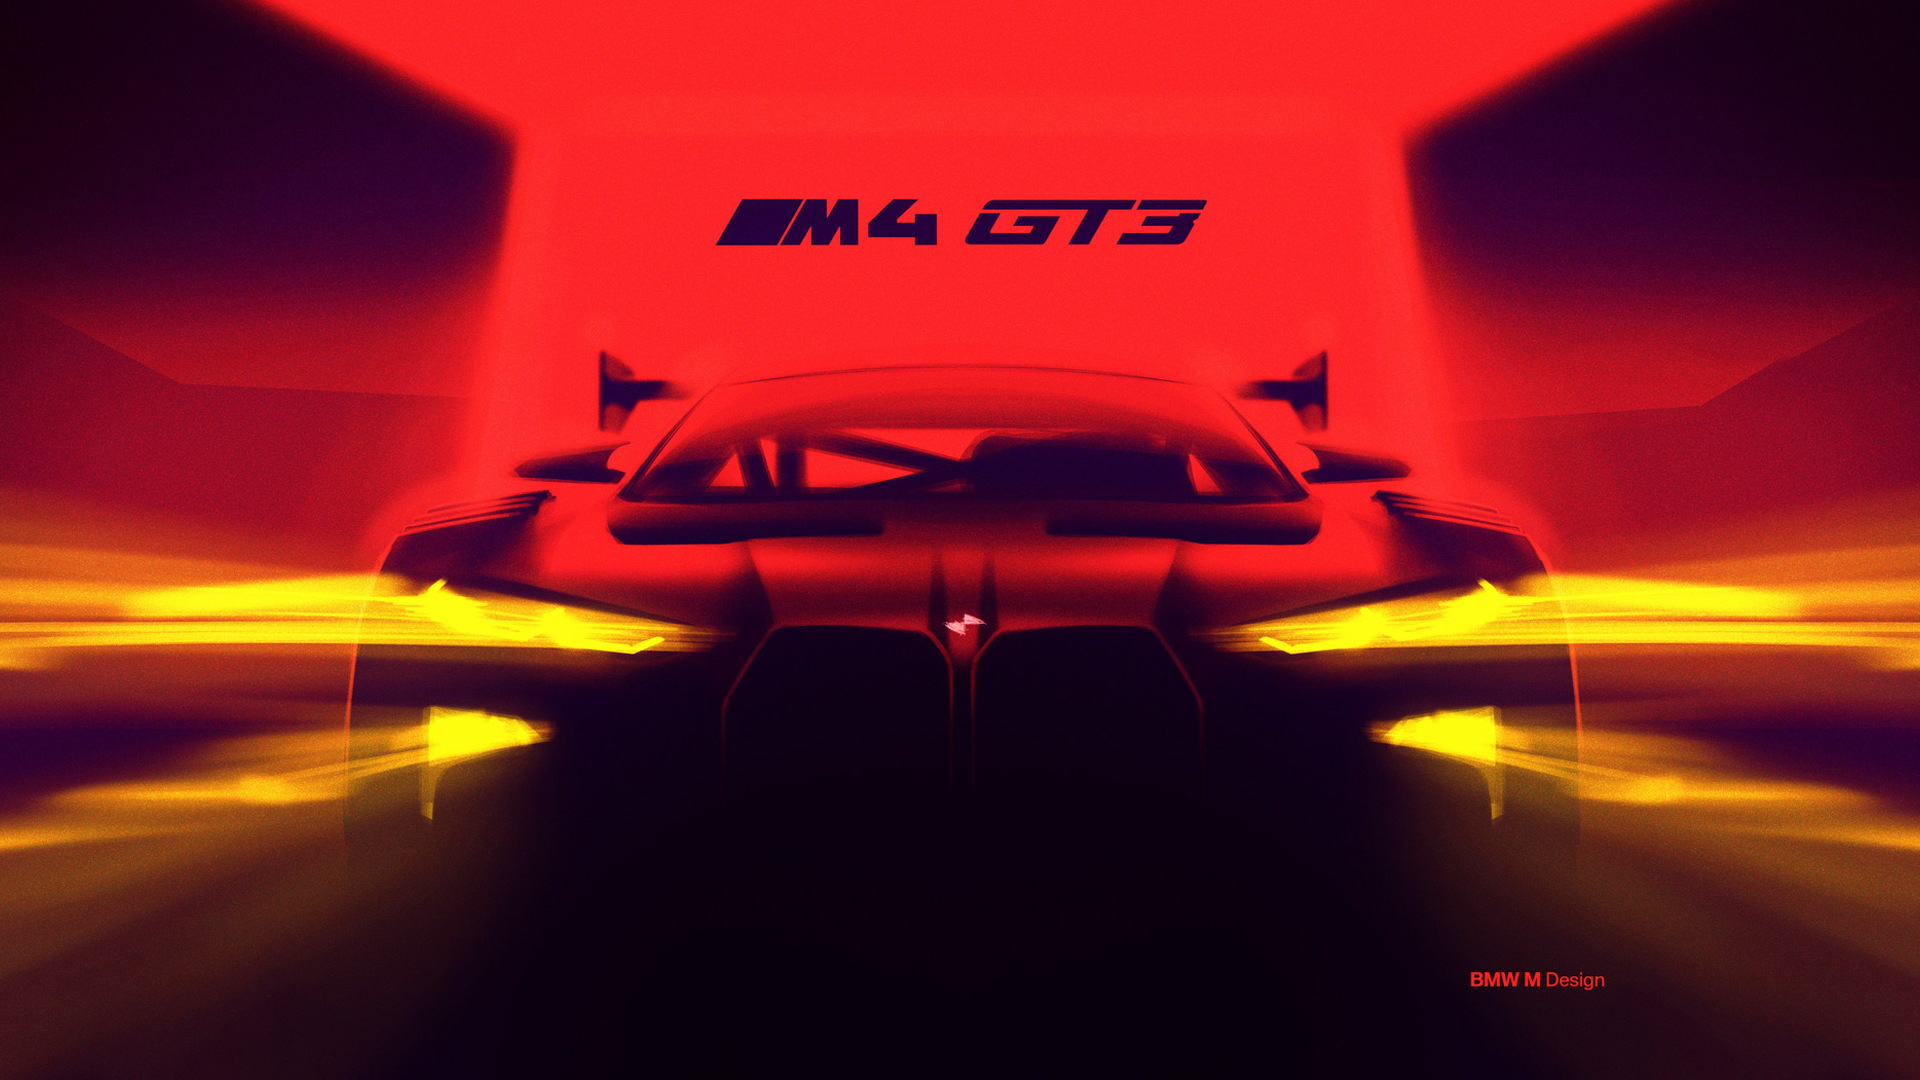 Teaser for 2022 BMW M4 GT3 race car